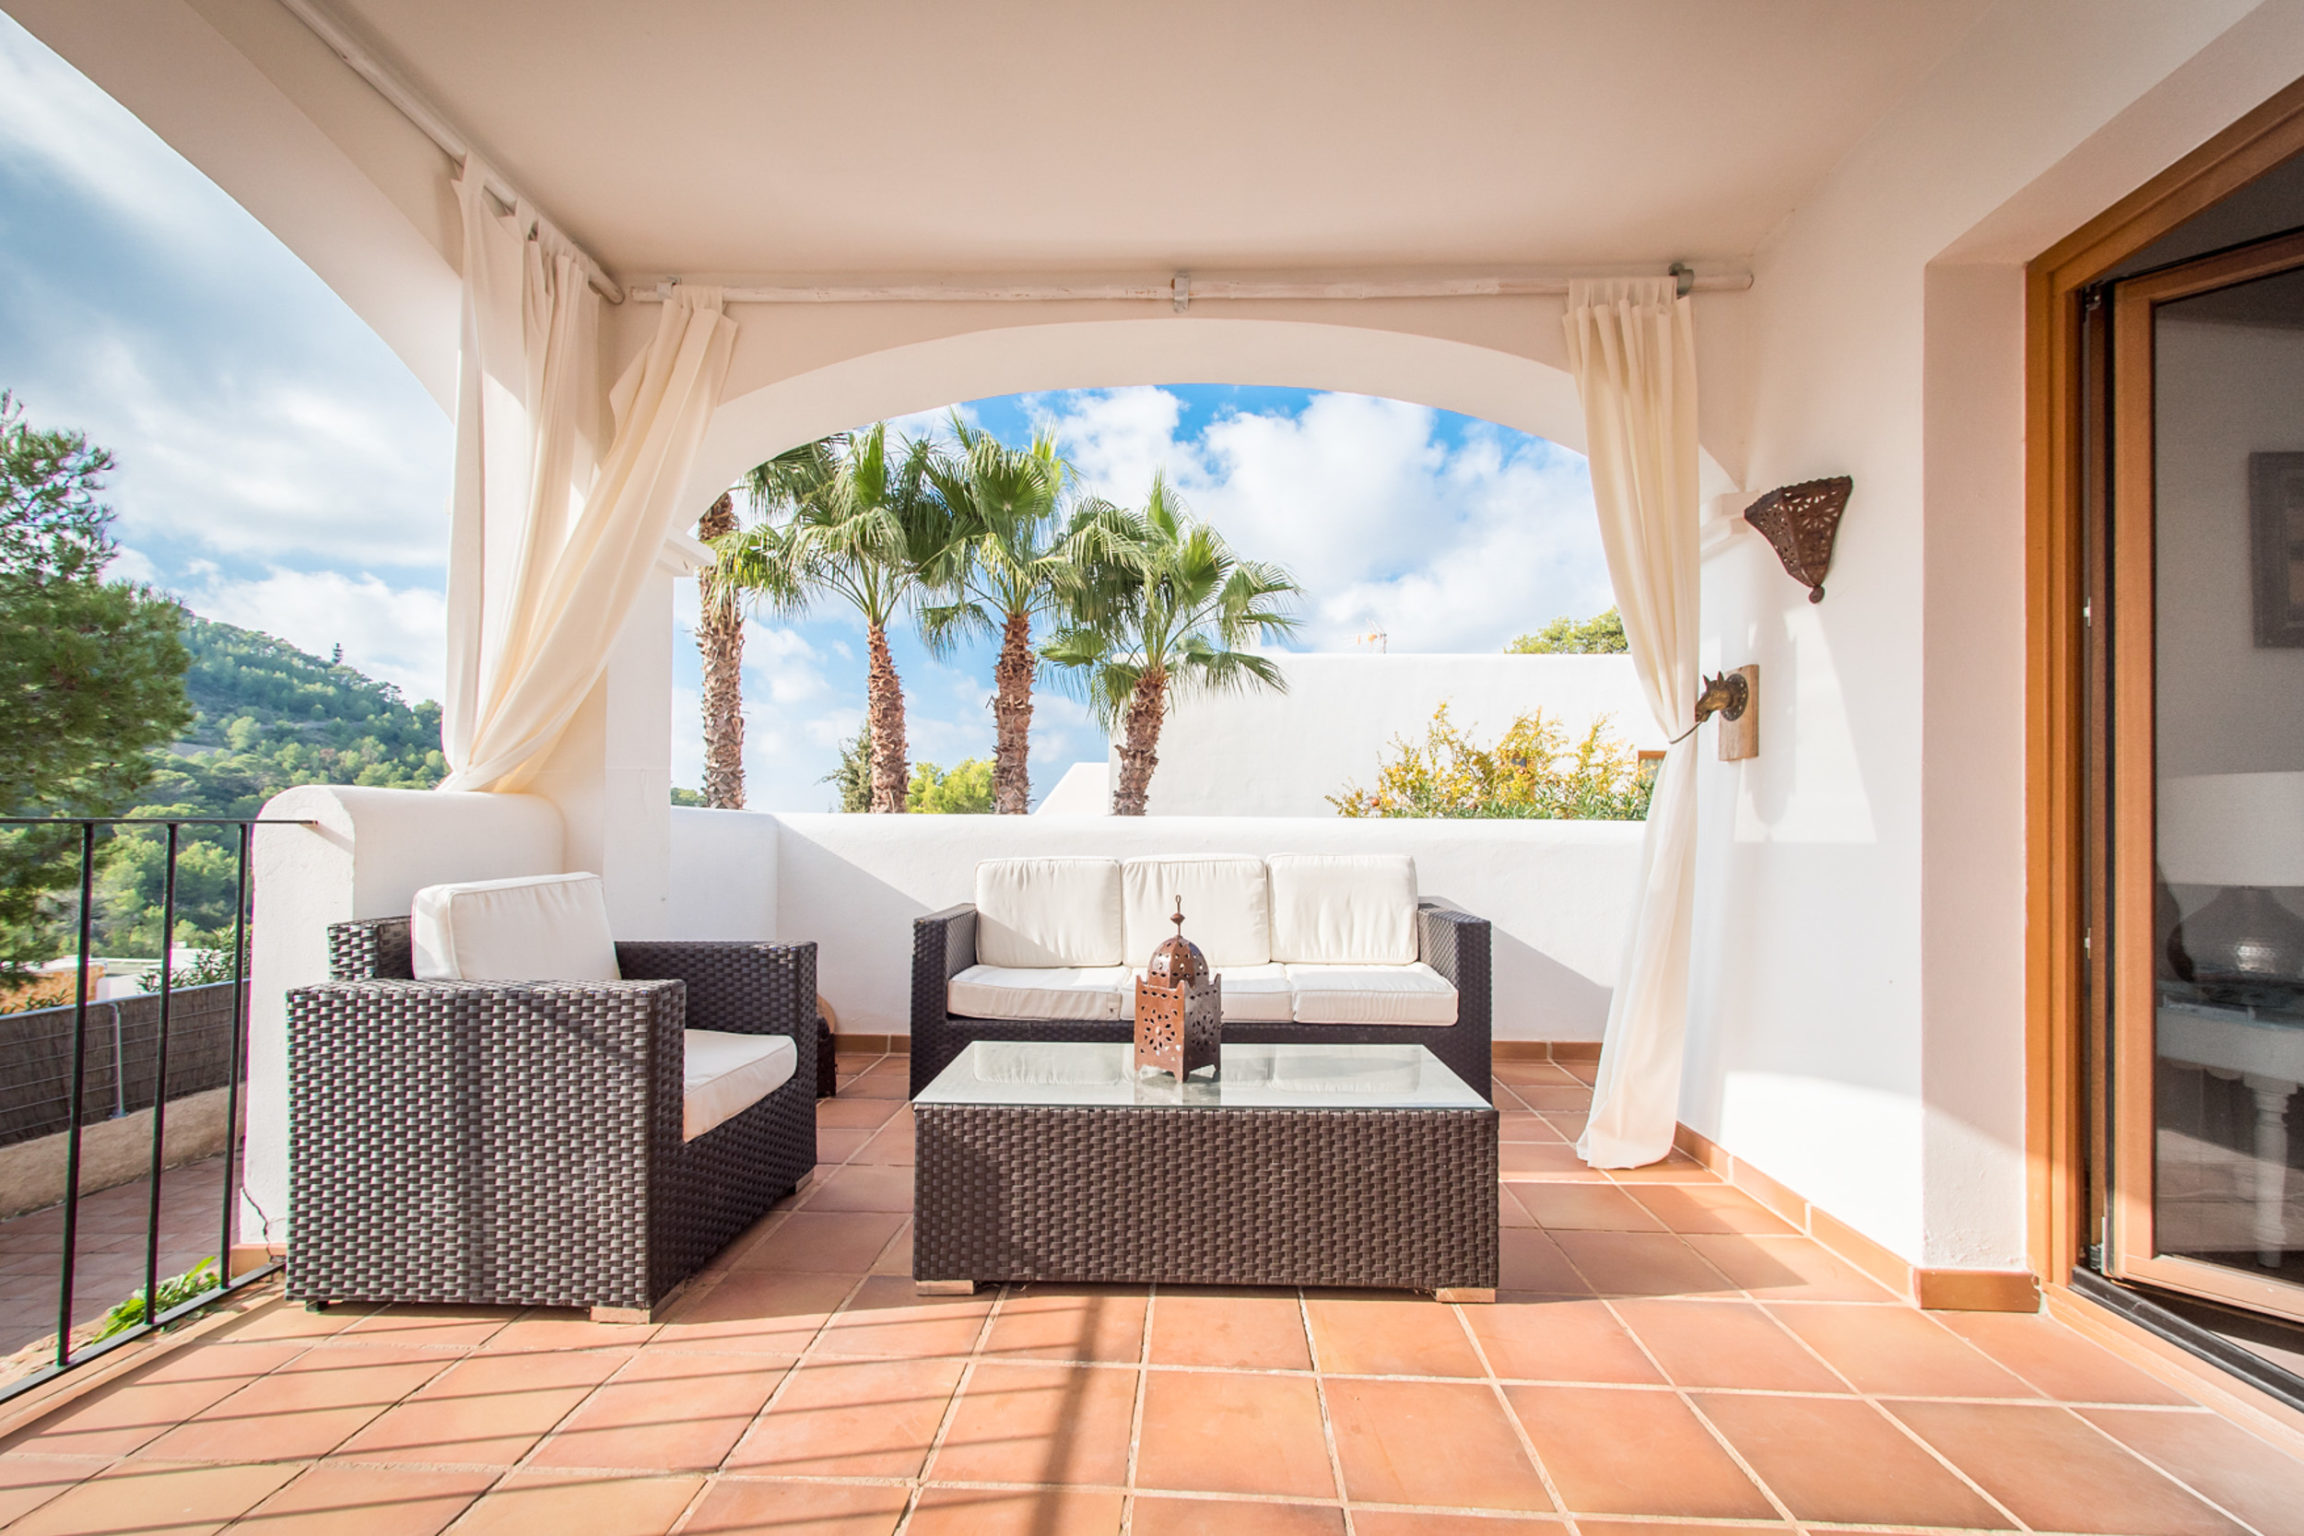 https://www.white-ibiza.com/wp-content/uploads/2020/03/white-ibiza-property-WI137-2020-11-2304x1536.jpg